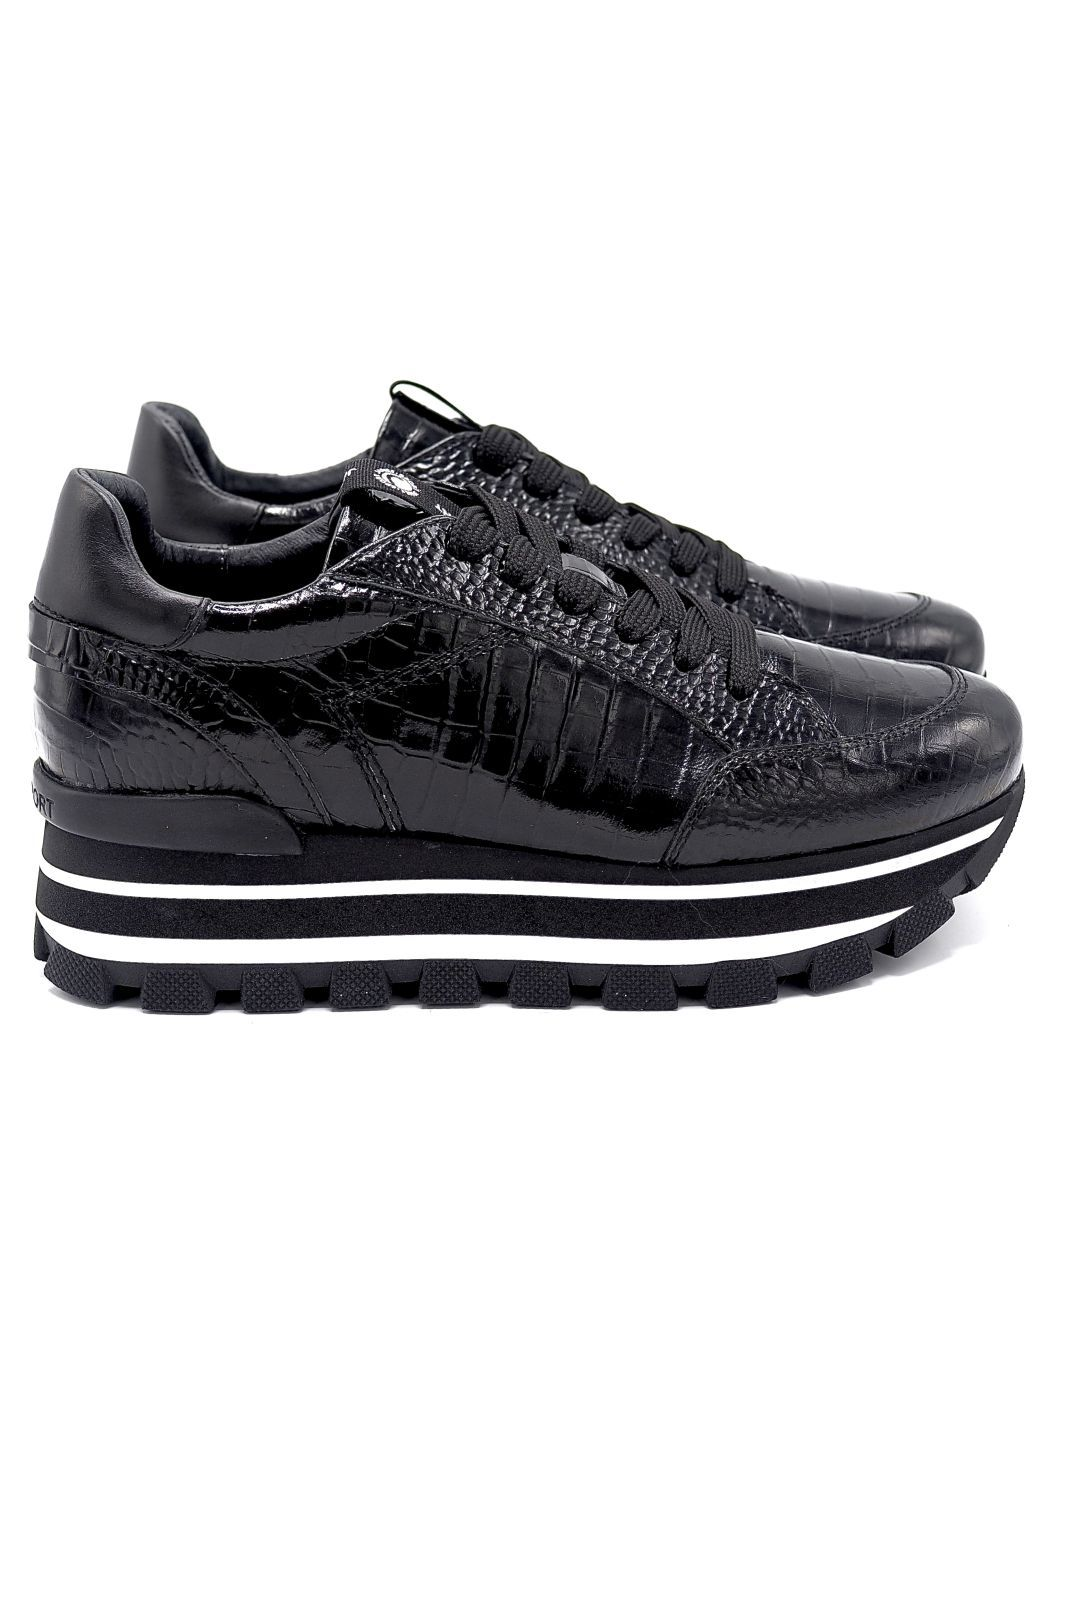 Janet&Janet basket bas Noir femmes (J&J-Basket semelle épaisse - 46654 Runner croco noir) - Marine | Much more than shoes